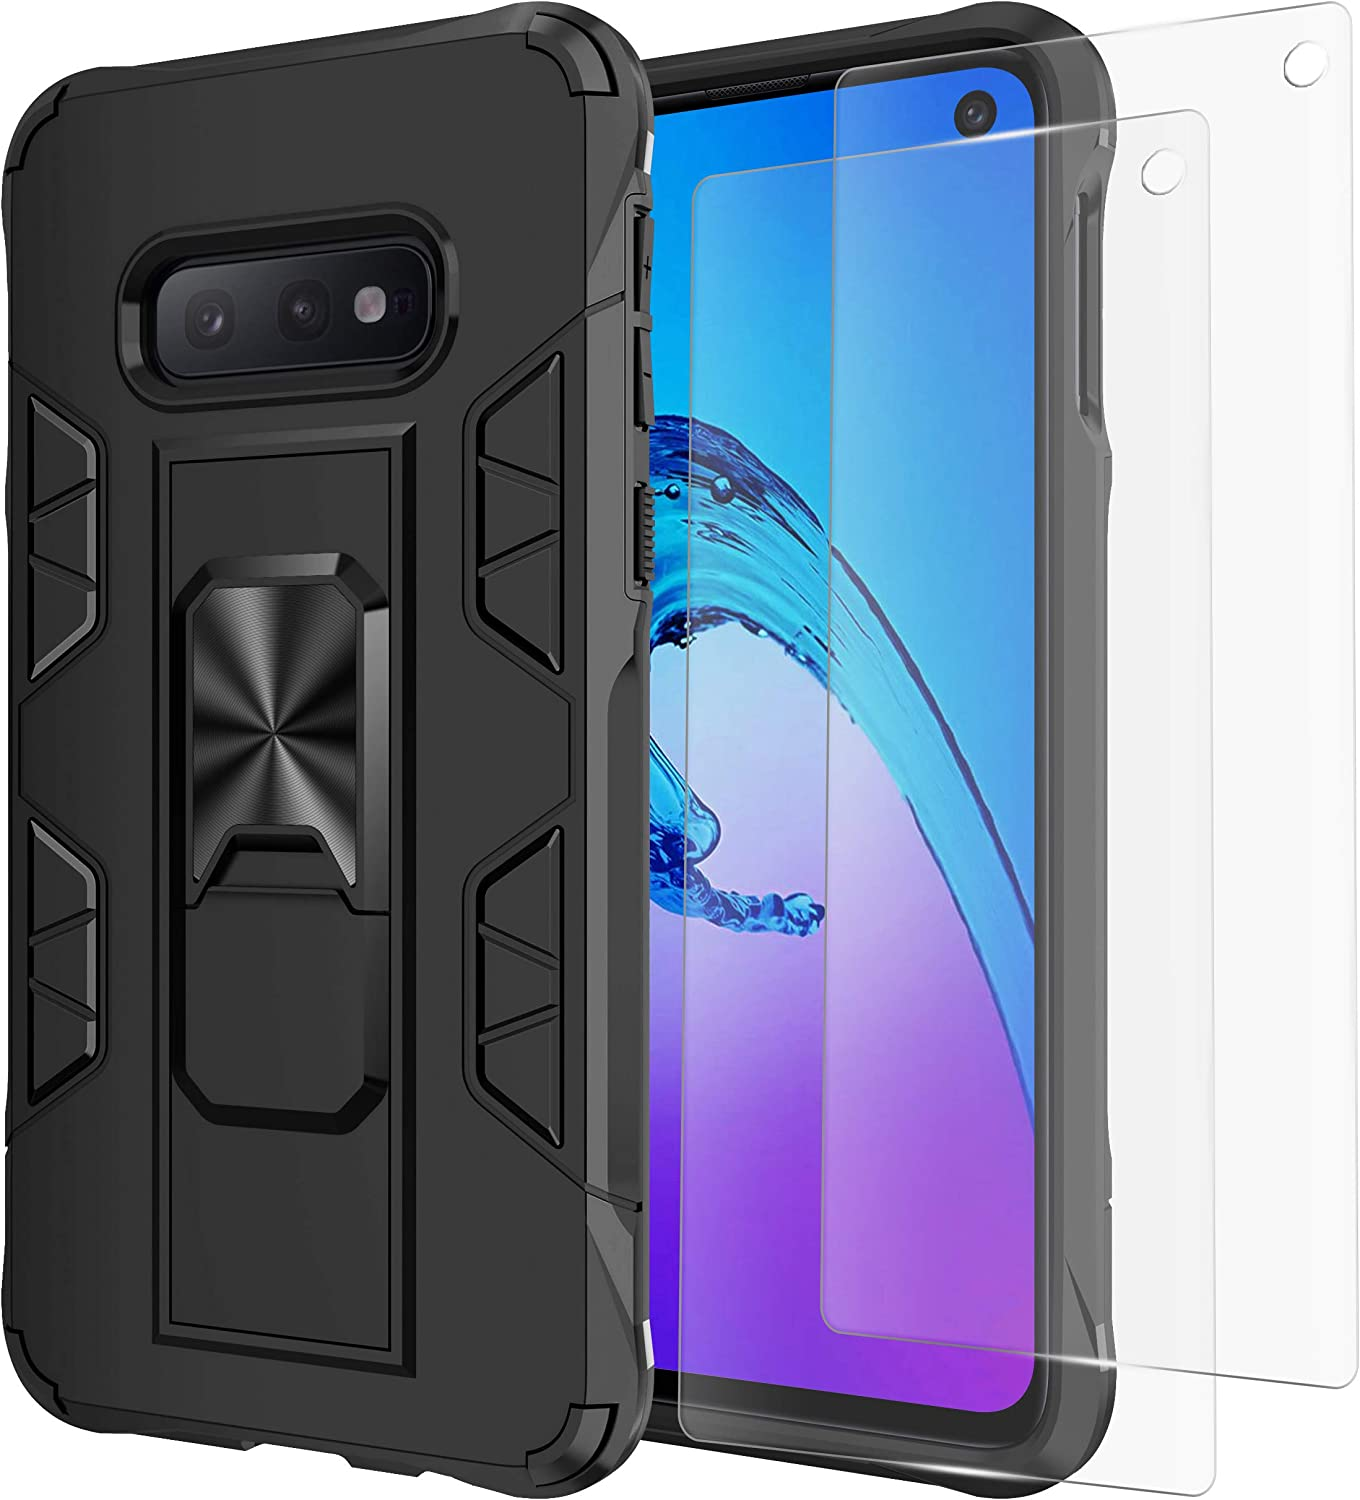 Max 84% OFF Compatible for Galaxy S10E Tempered Case Samsung with Year-end annual account